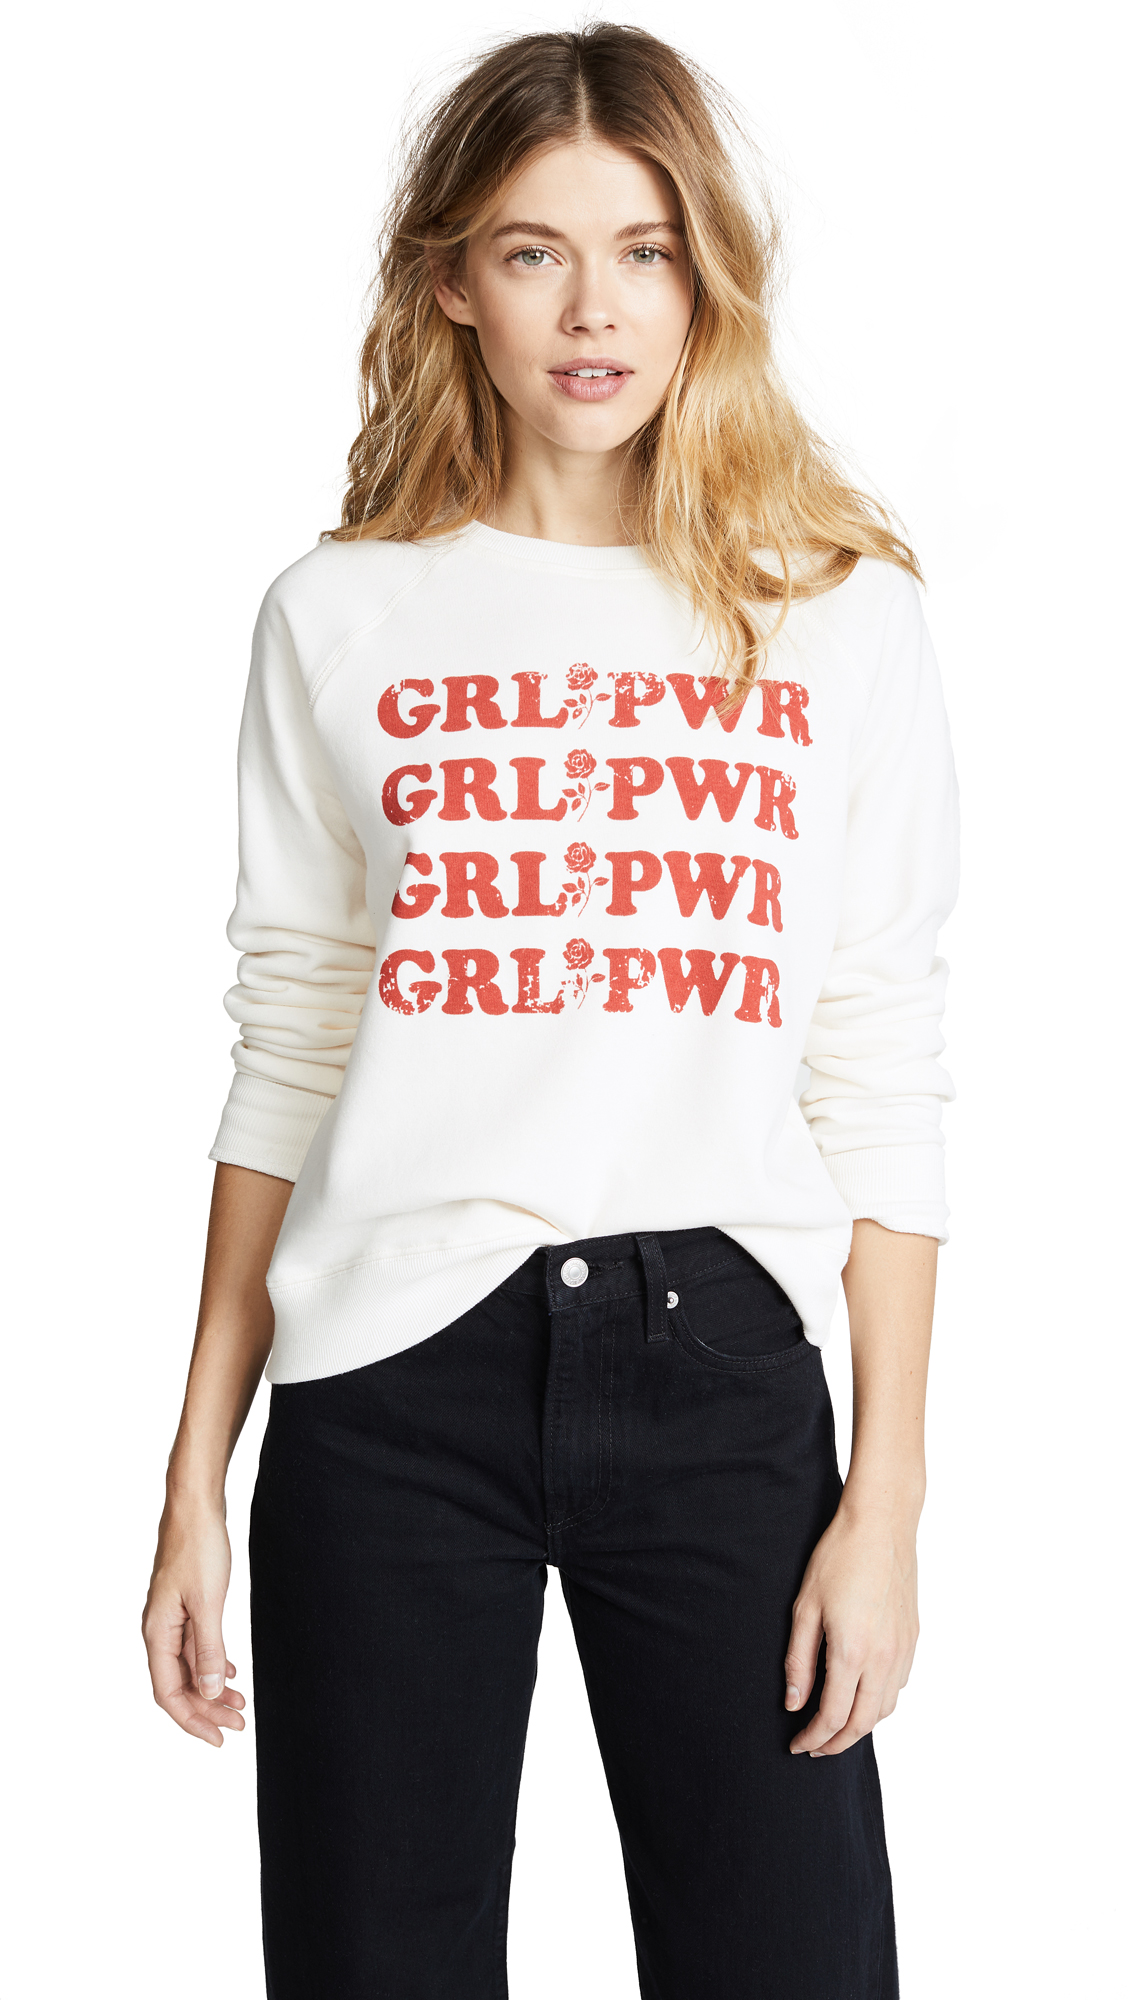 Rebecca Minkoff Girl Power Sweatshirt In Cream/Terracotta